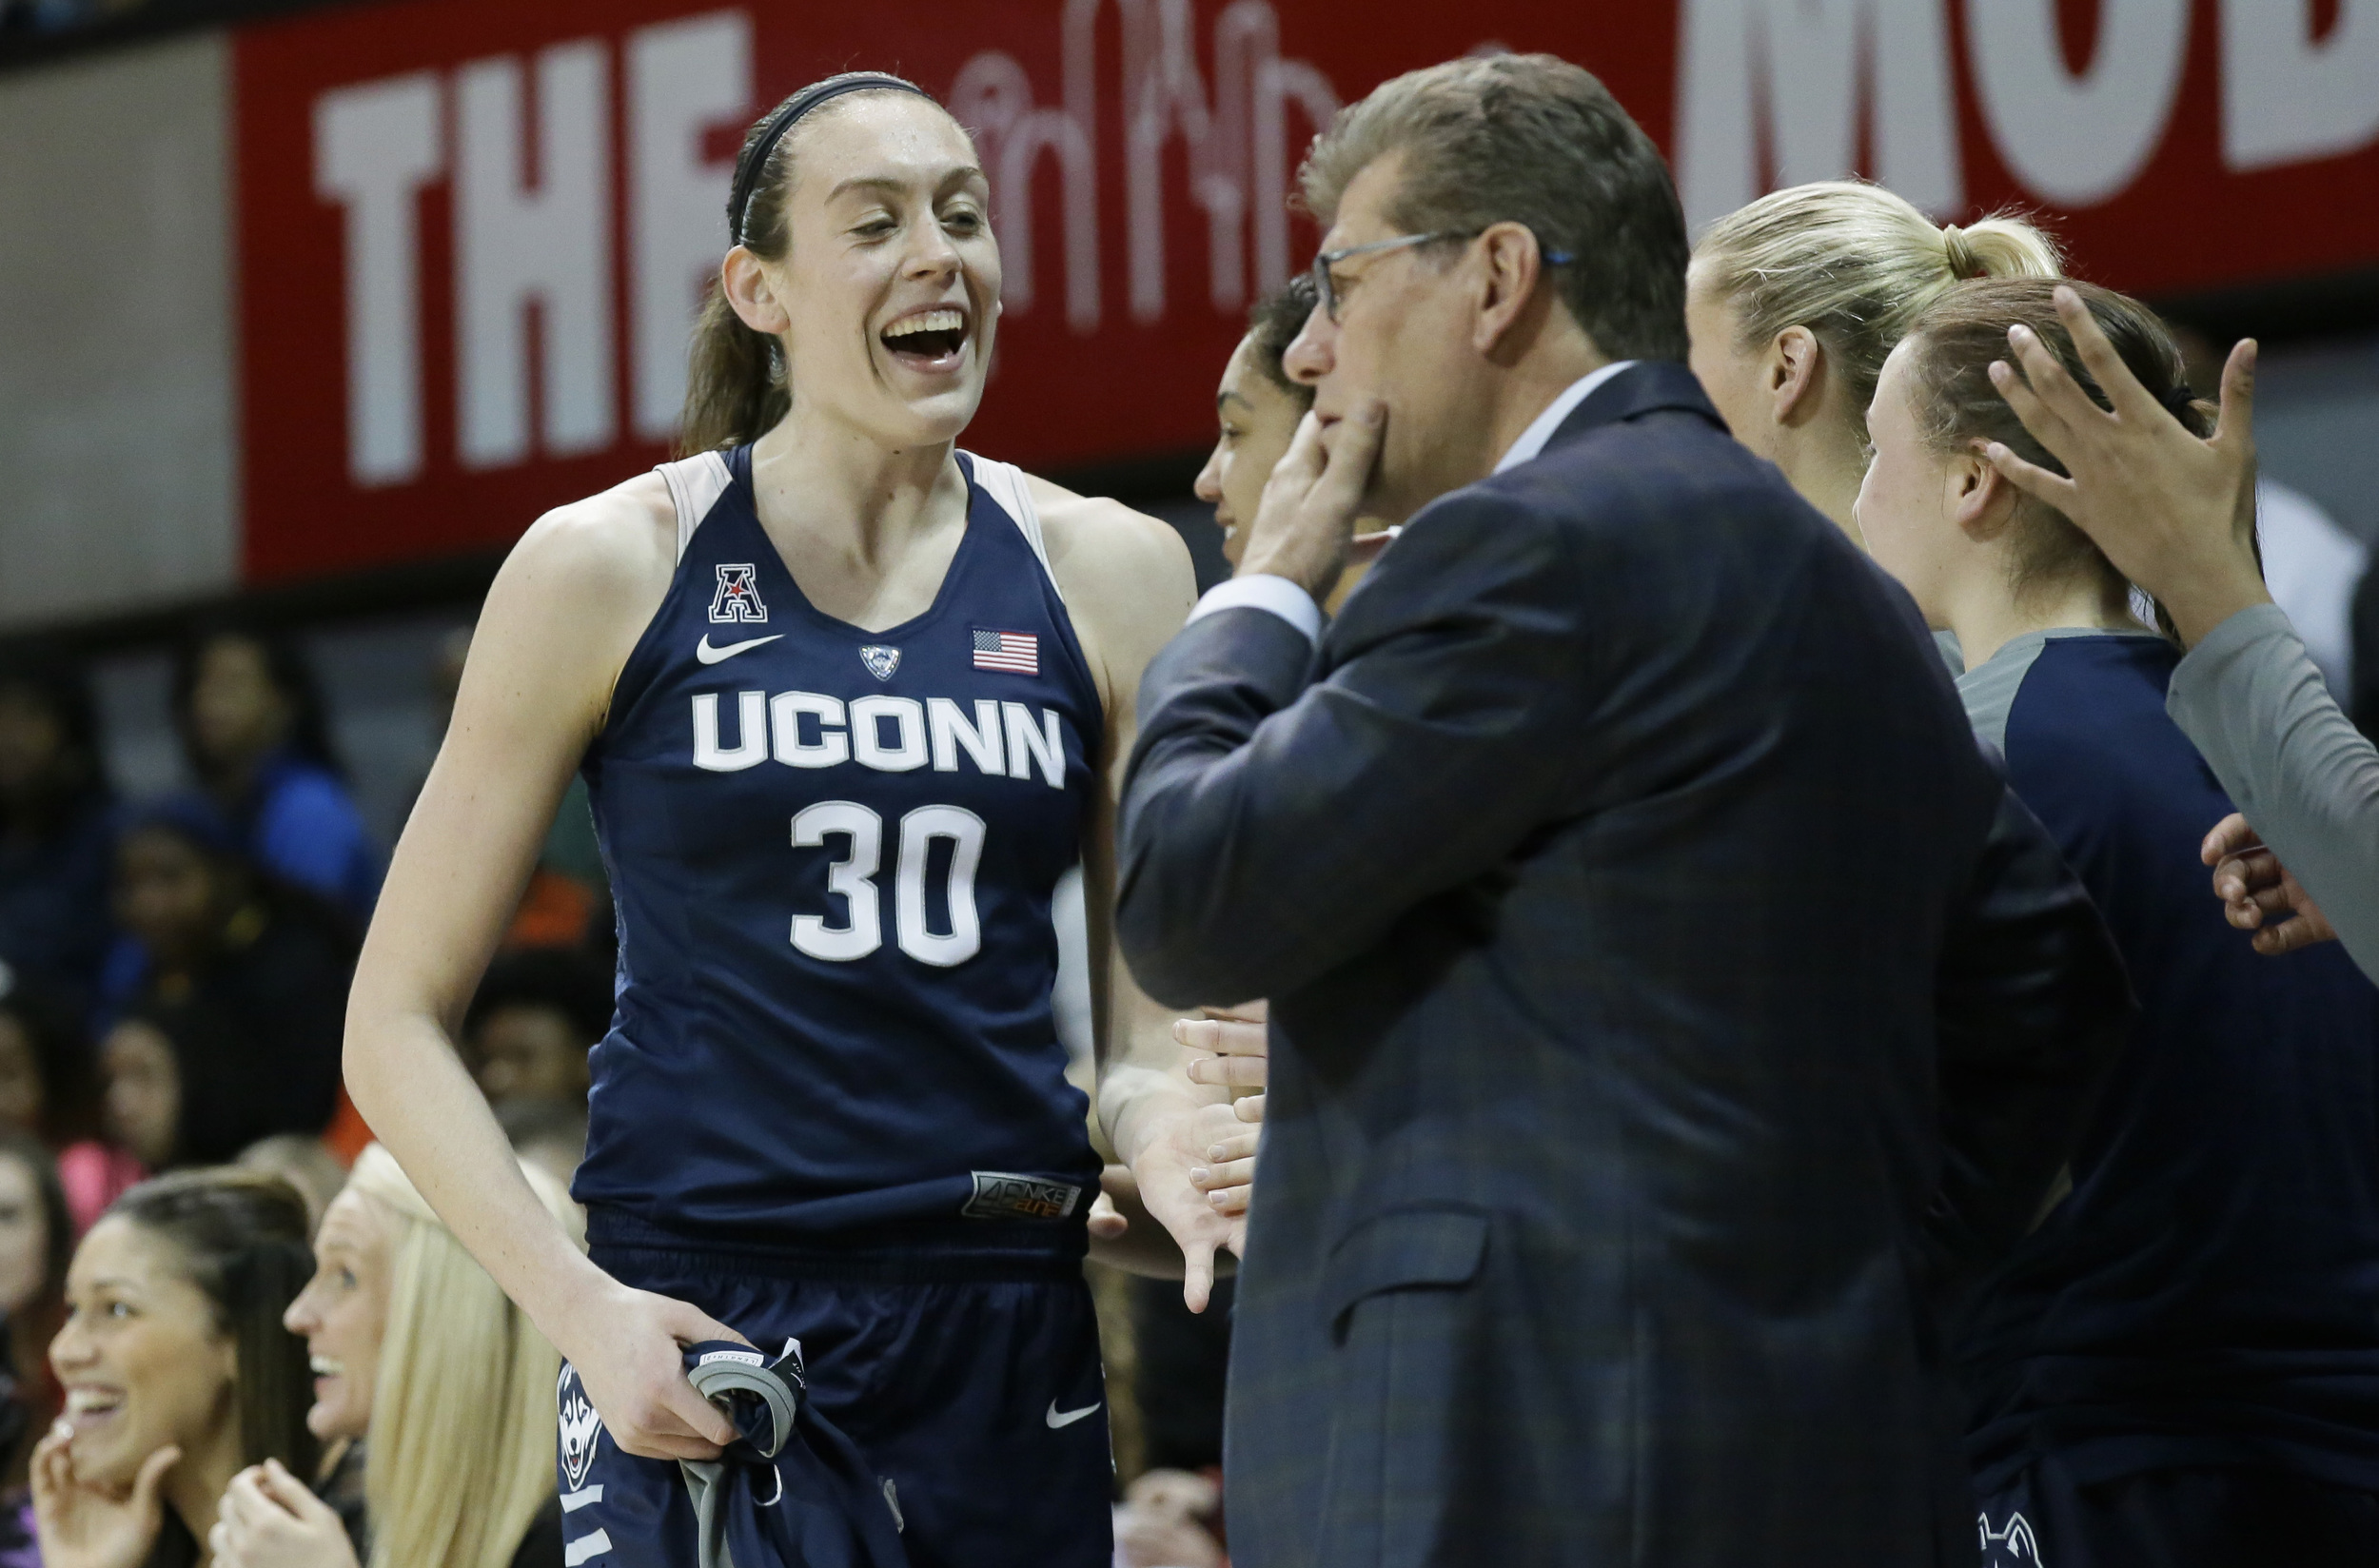 Connecticut forward Breanna Stewart (30) is congratulated by teammates as she comes out of the game during the second half of an NCAA college basketball game against SMU Saturday, Jan. 23, 2016, in Dallas. UConn won 90-37. (LM Otero/AP)